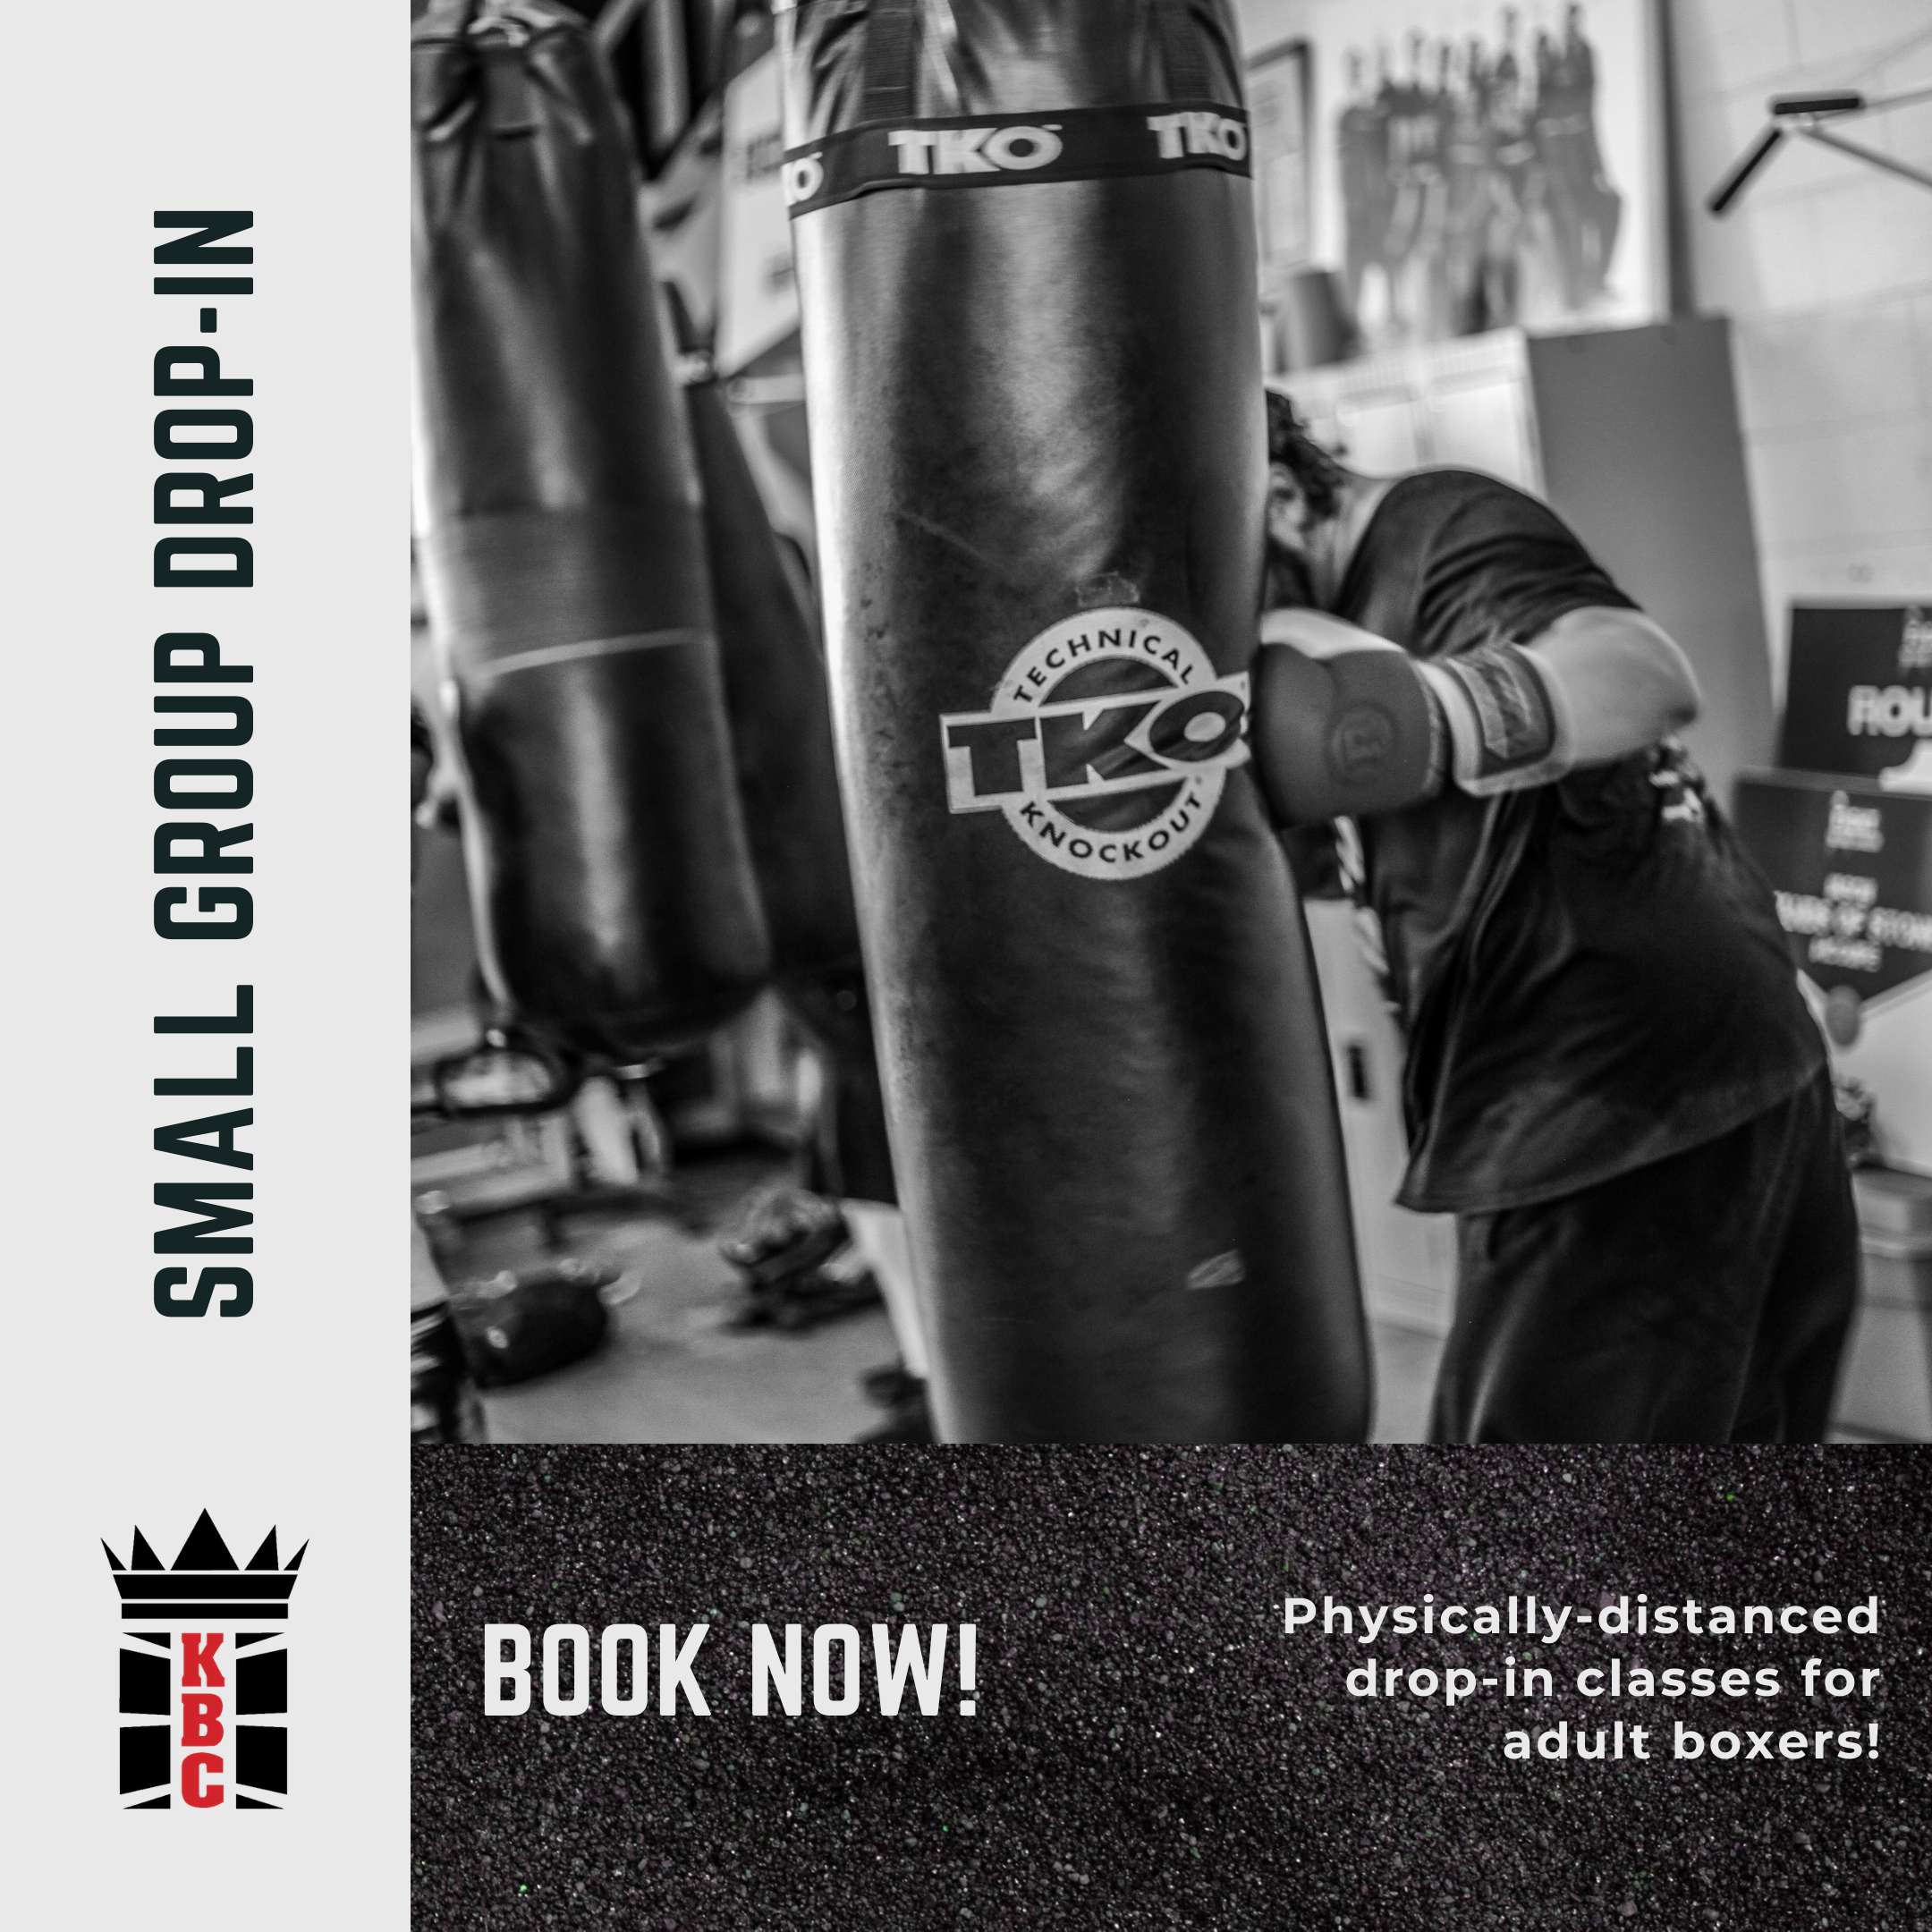 Small Group Adult Boxing Classes are HERE!